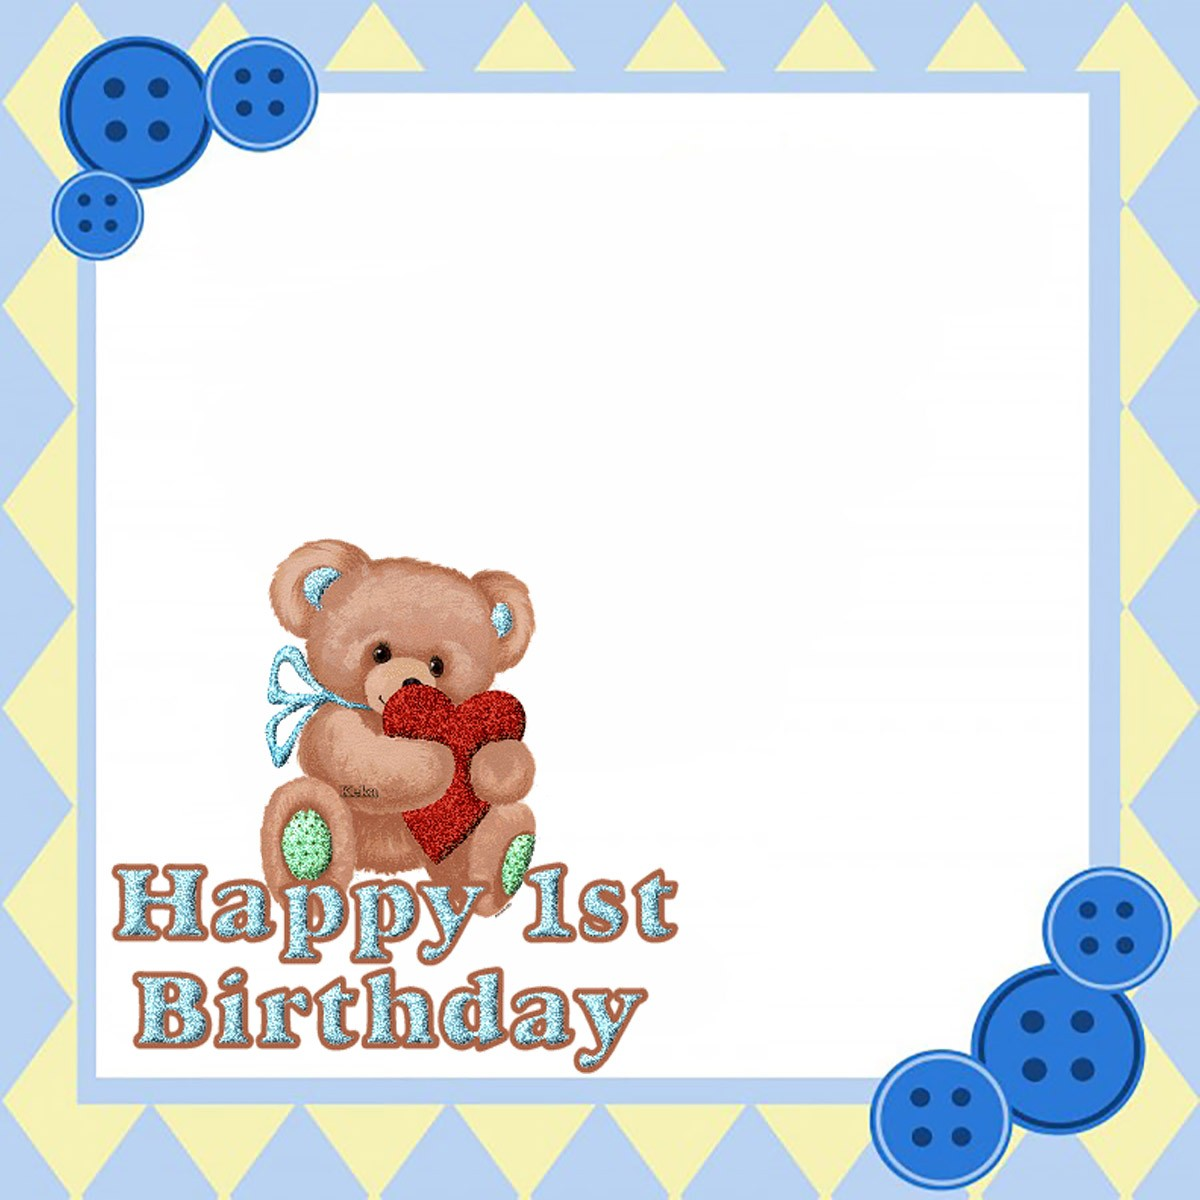 Printable Teddy Bear First Birthday Invitation Card | Invitations Online